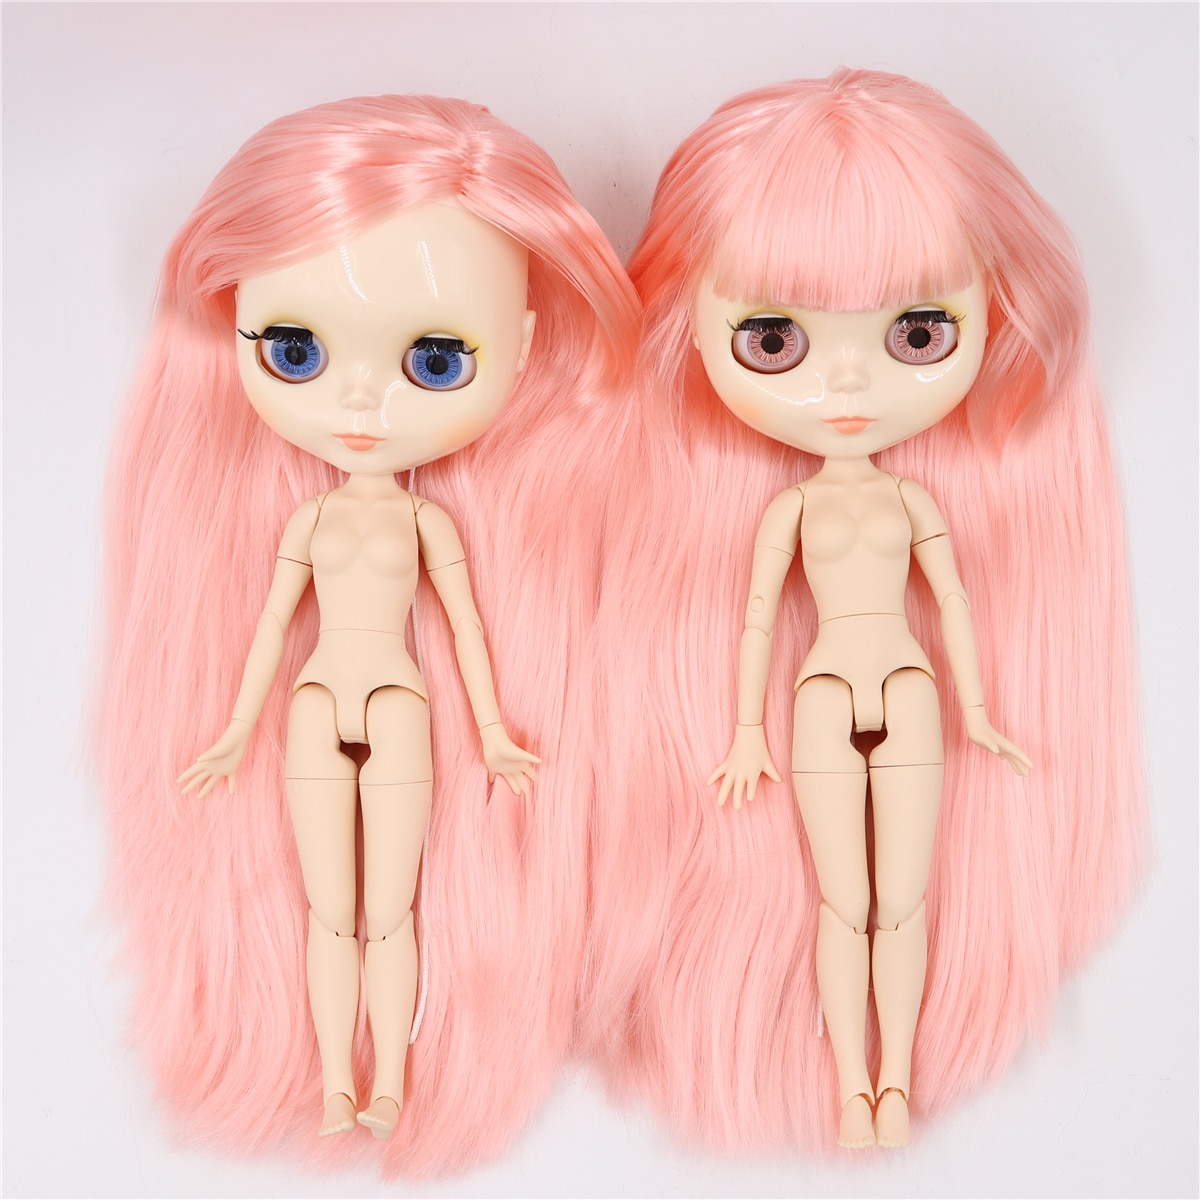 ICY factory blyth doll bjd toy joint body white skin shiny face 30cm 1/6 on sale special offer-4